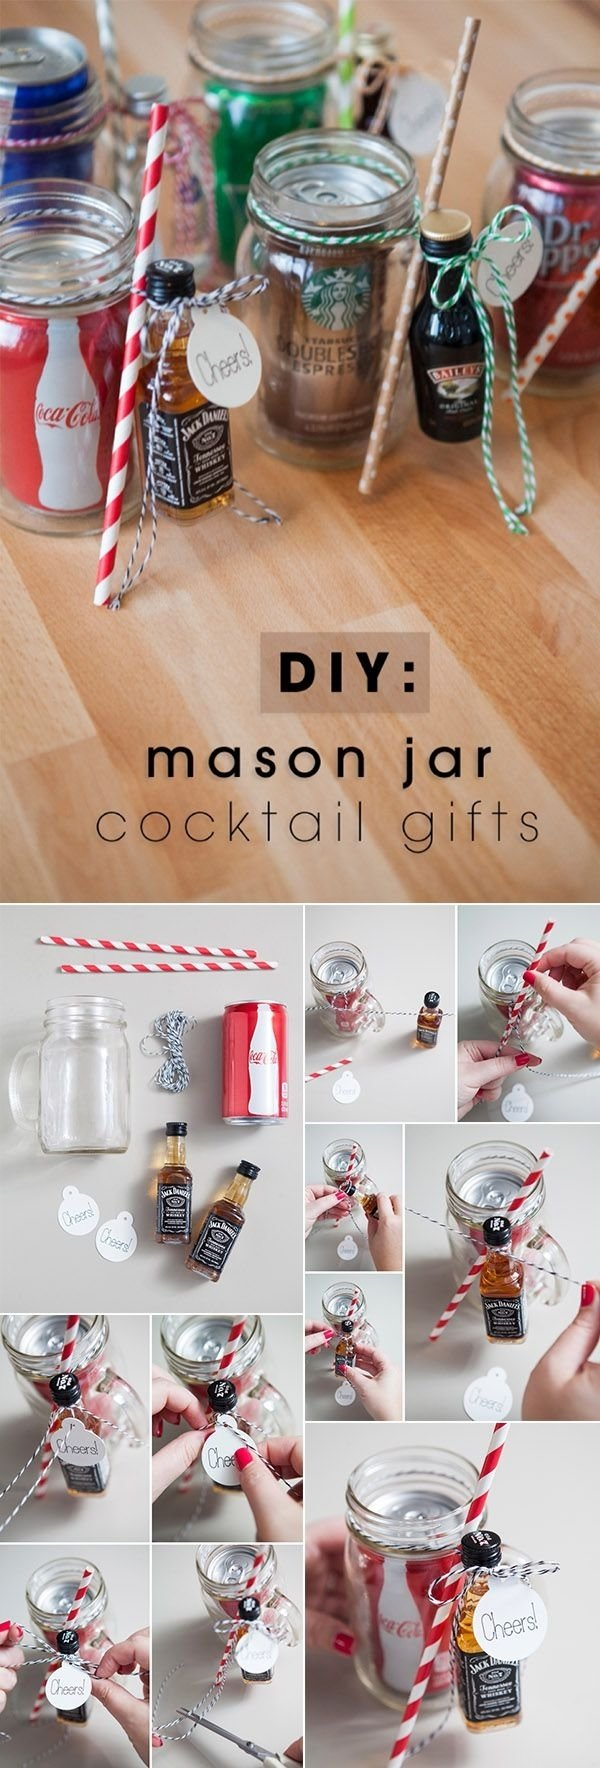 10 Fantastic Pinterest Ideas For Christmas Gifts